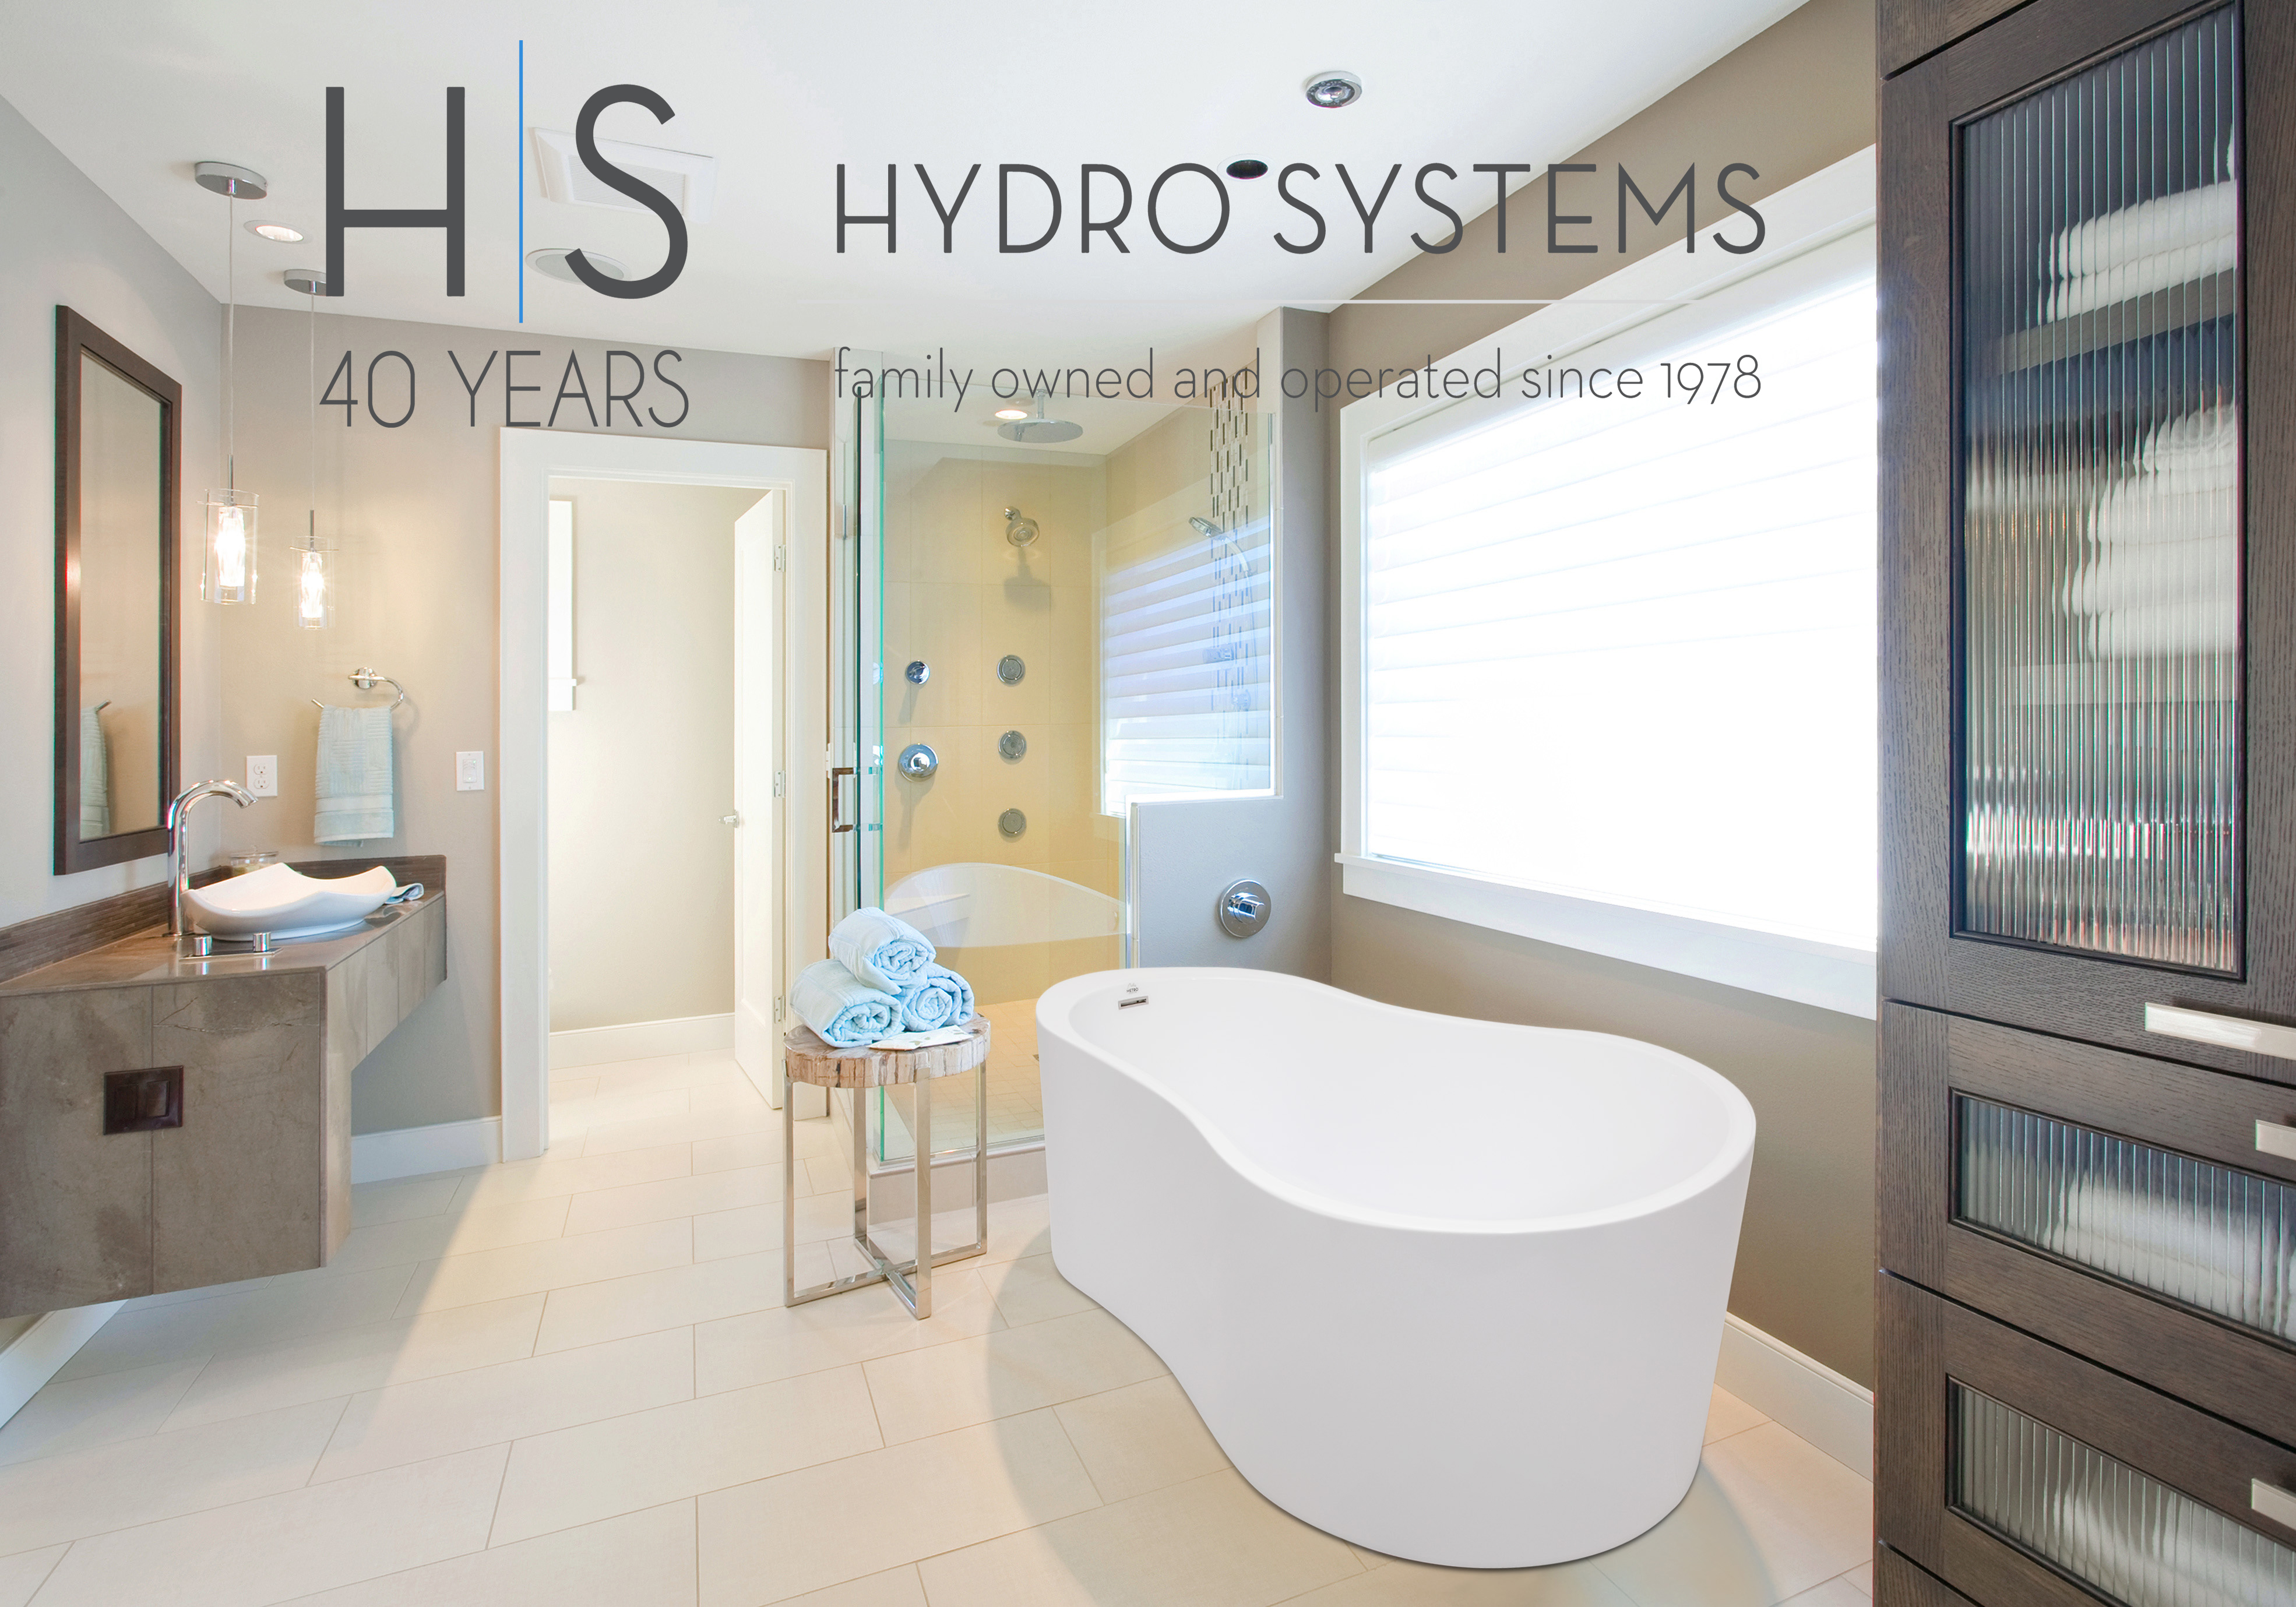 Hydro Systems To Open New Manufacturing Facility In Georgia